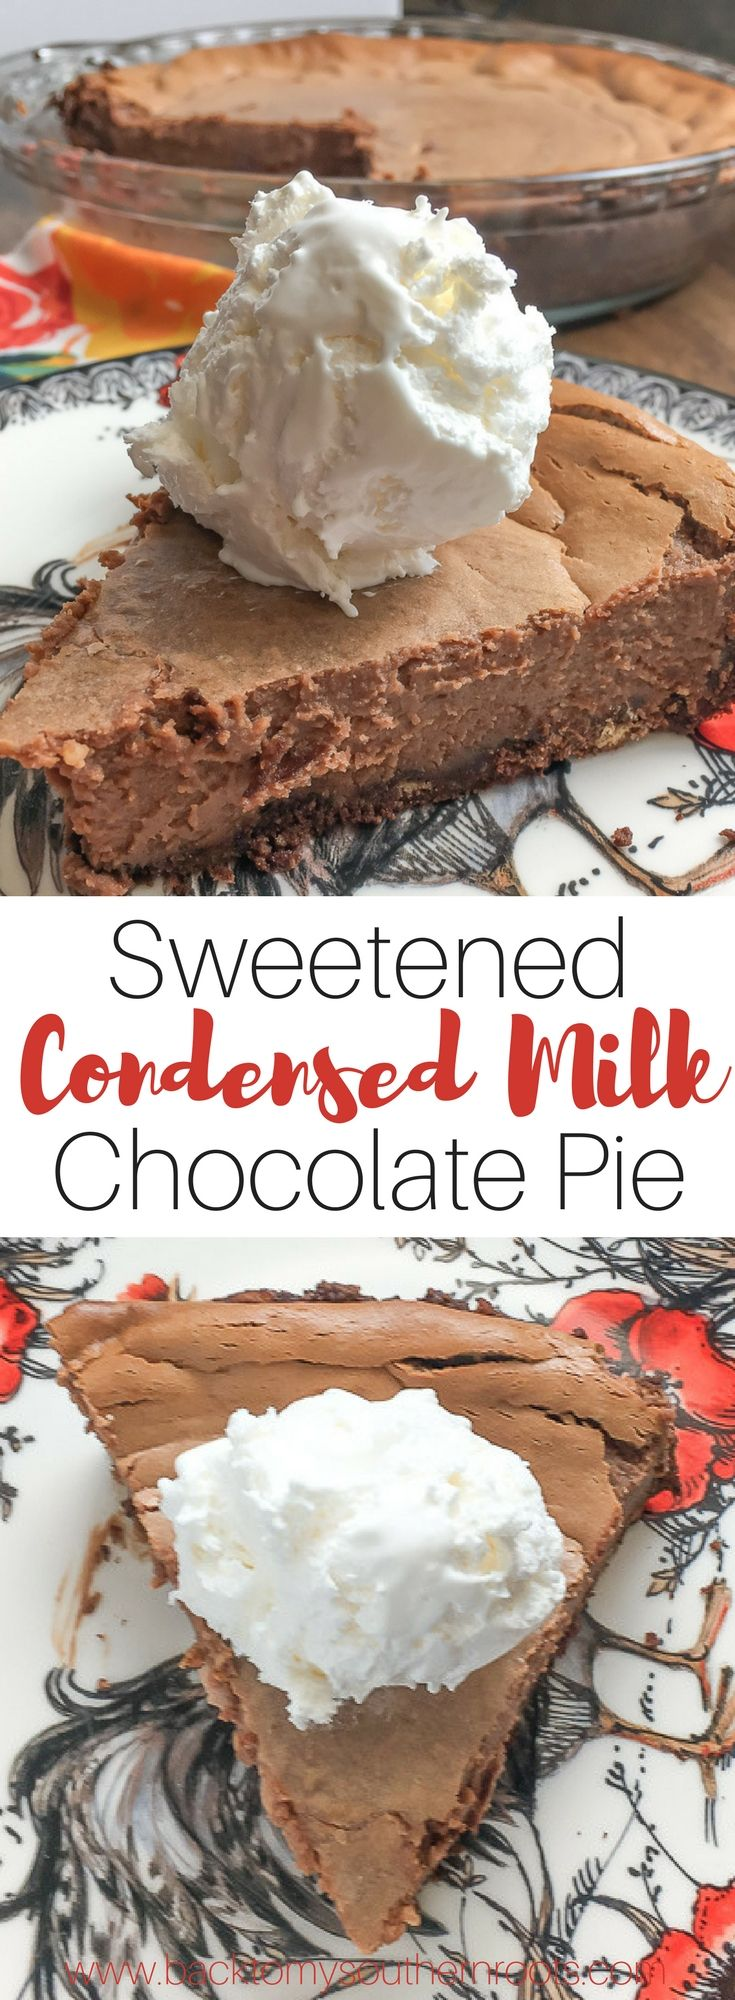 Sweetened Condensed Milk Chocolate Pie Recipe Milk Recipes Dessert Homemade Desserts Chocolate Pie Recipes